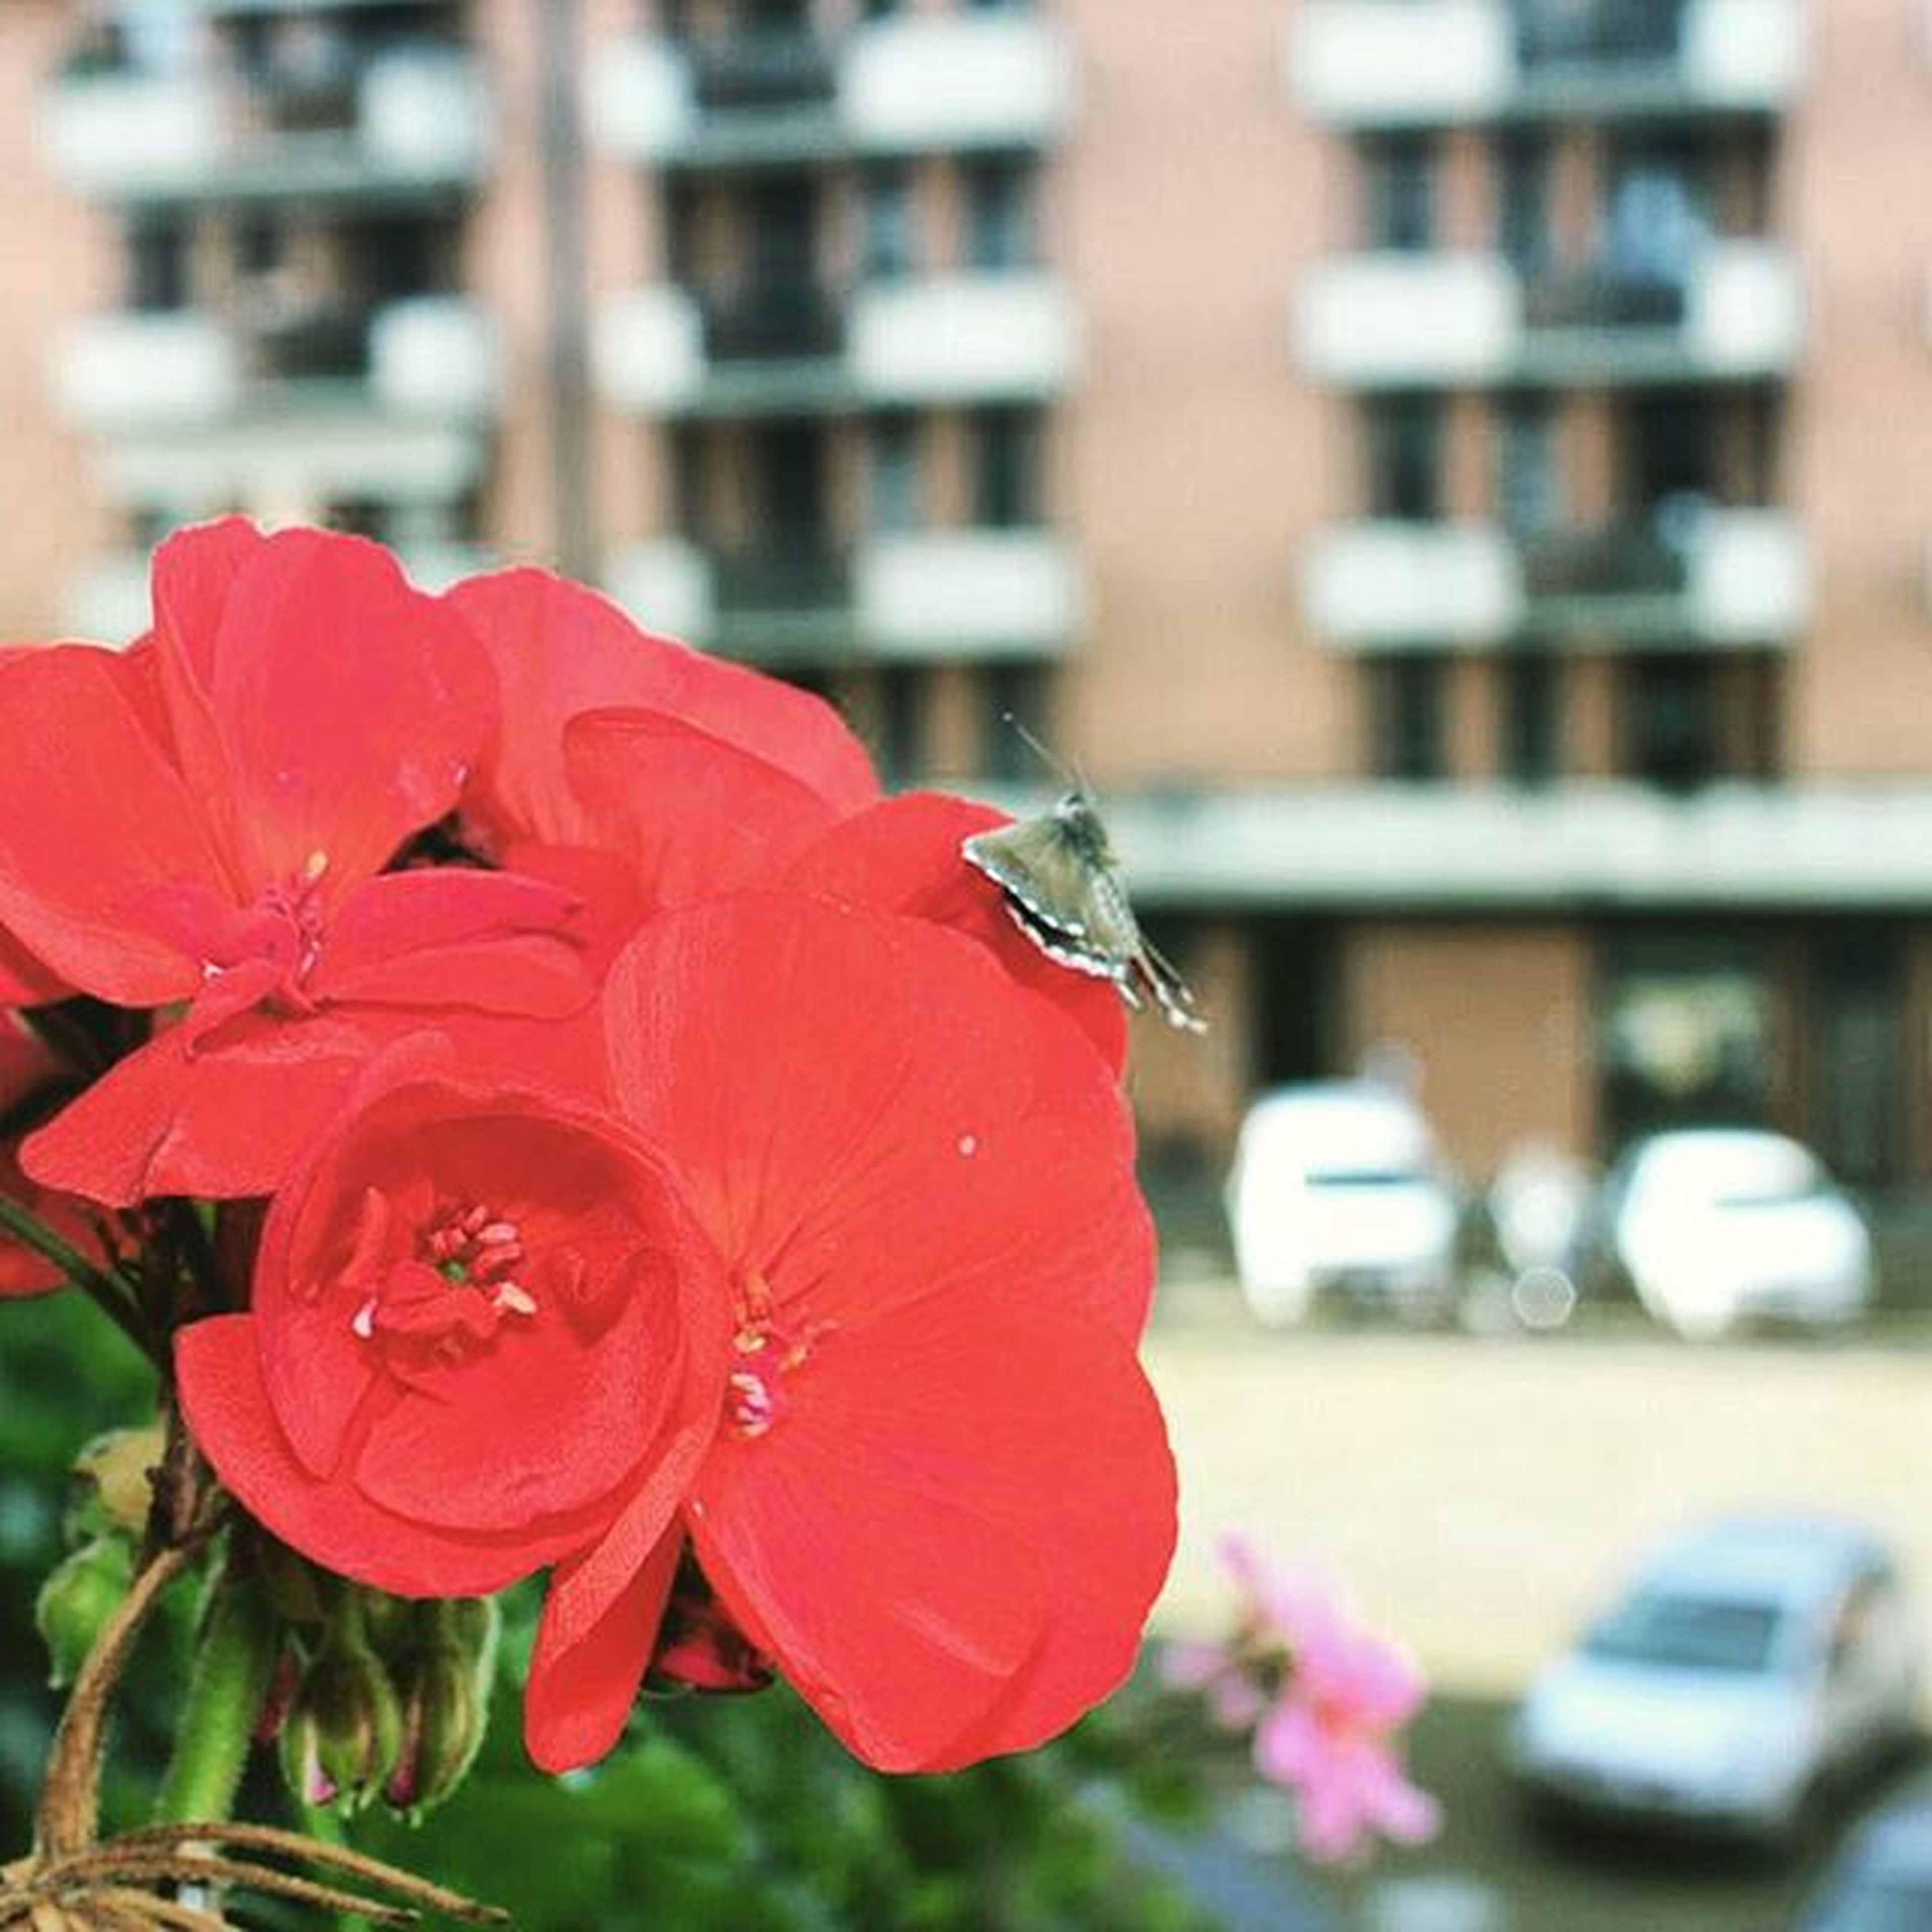 flower, petal, focus on foreground, flower head, red, fragility, freshness, close-up, building exterior, architecture, built structure, blooming, growth, selective focus, beauty in nature, day, outdoors, city, nature, incidental people